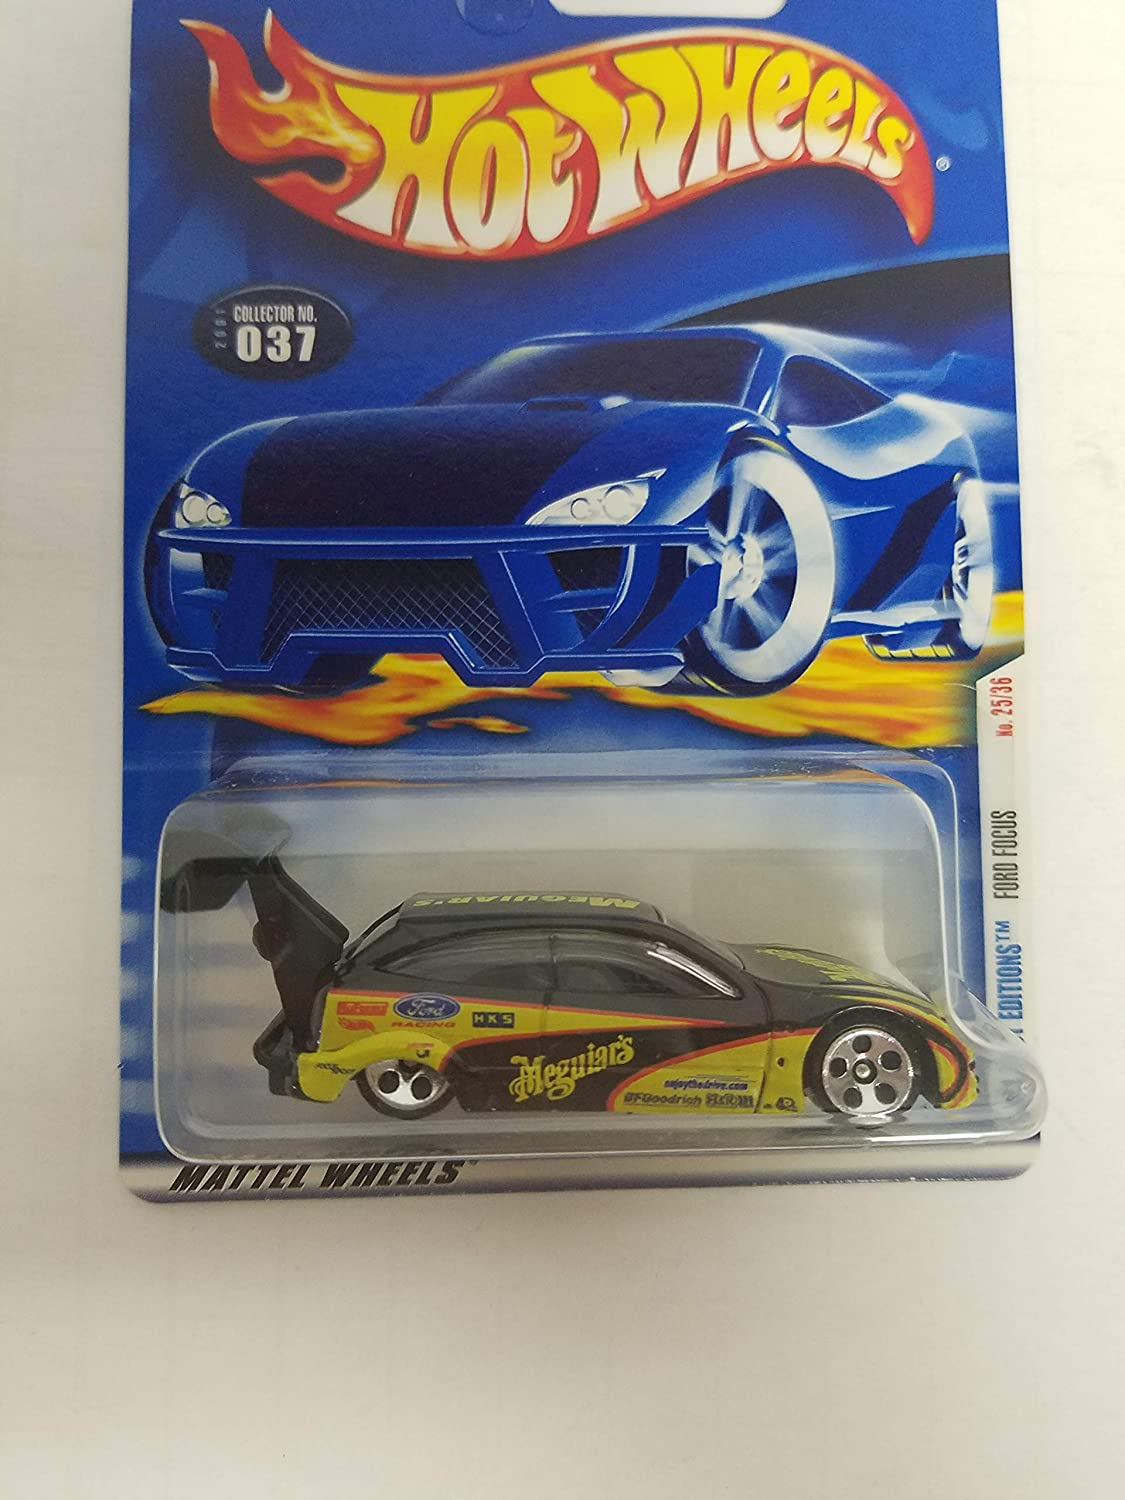 Ford Focus Hot Wheels 2001 First Editions diecast 1/64 scale car No. 037